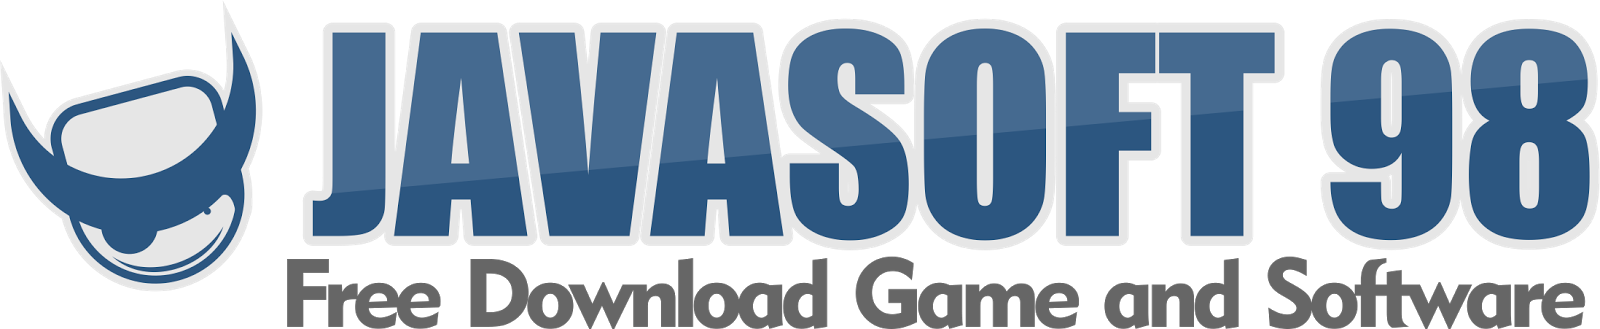 JAVASOFT98 | Free Download Game and Software